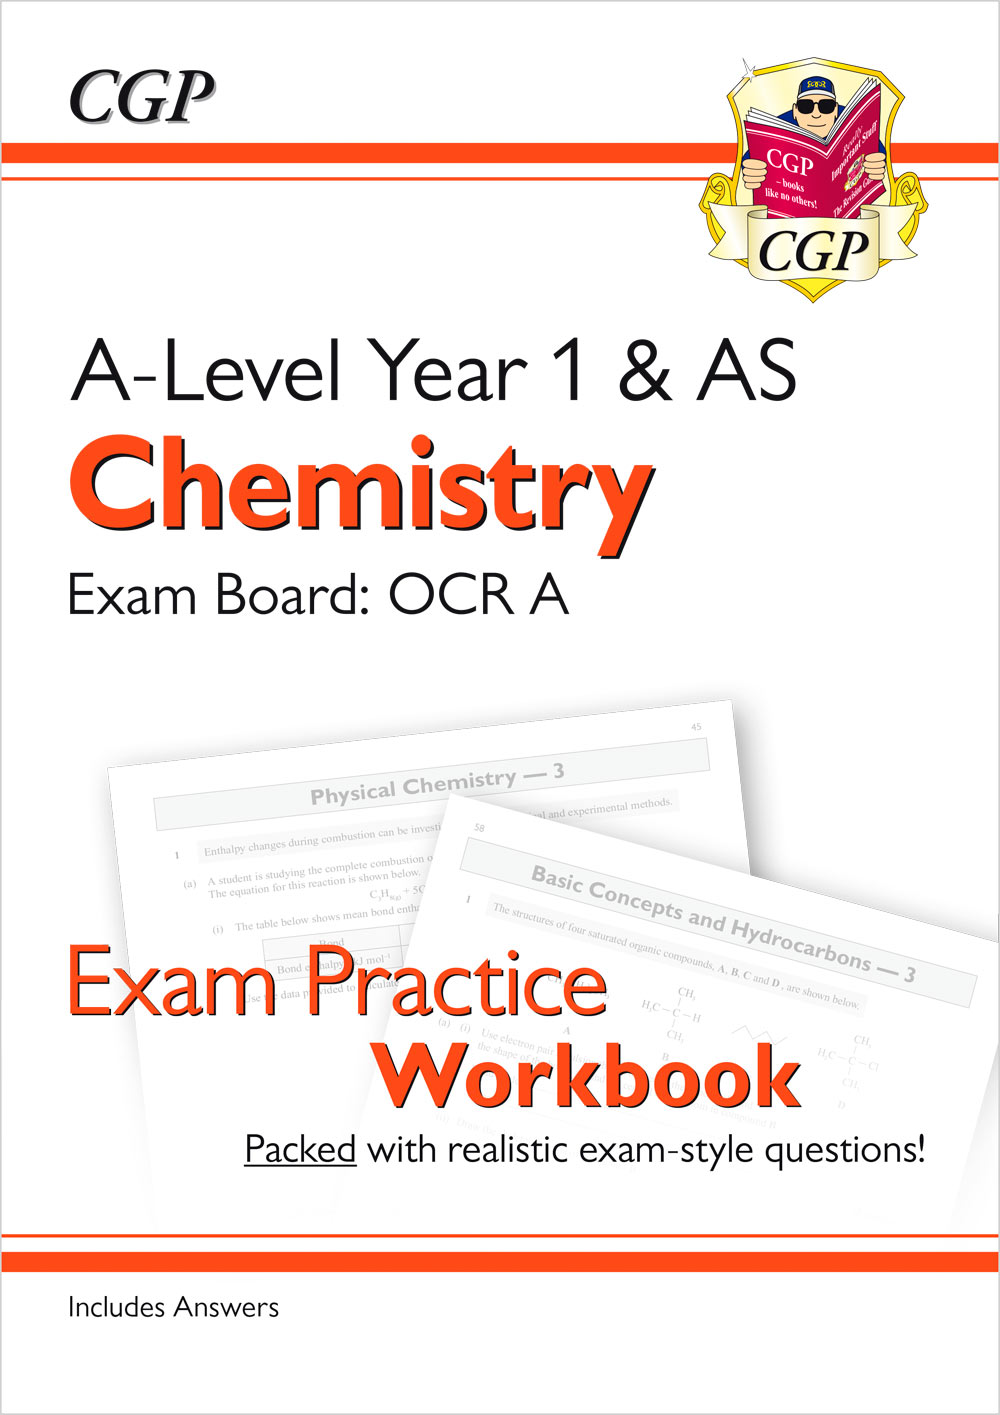 CRAQ51 - A-Level Chemistry: OCR A Year 1 & AS Exam Practice Workbook - includes Answers